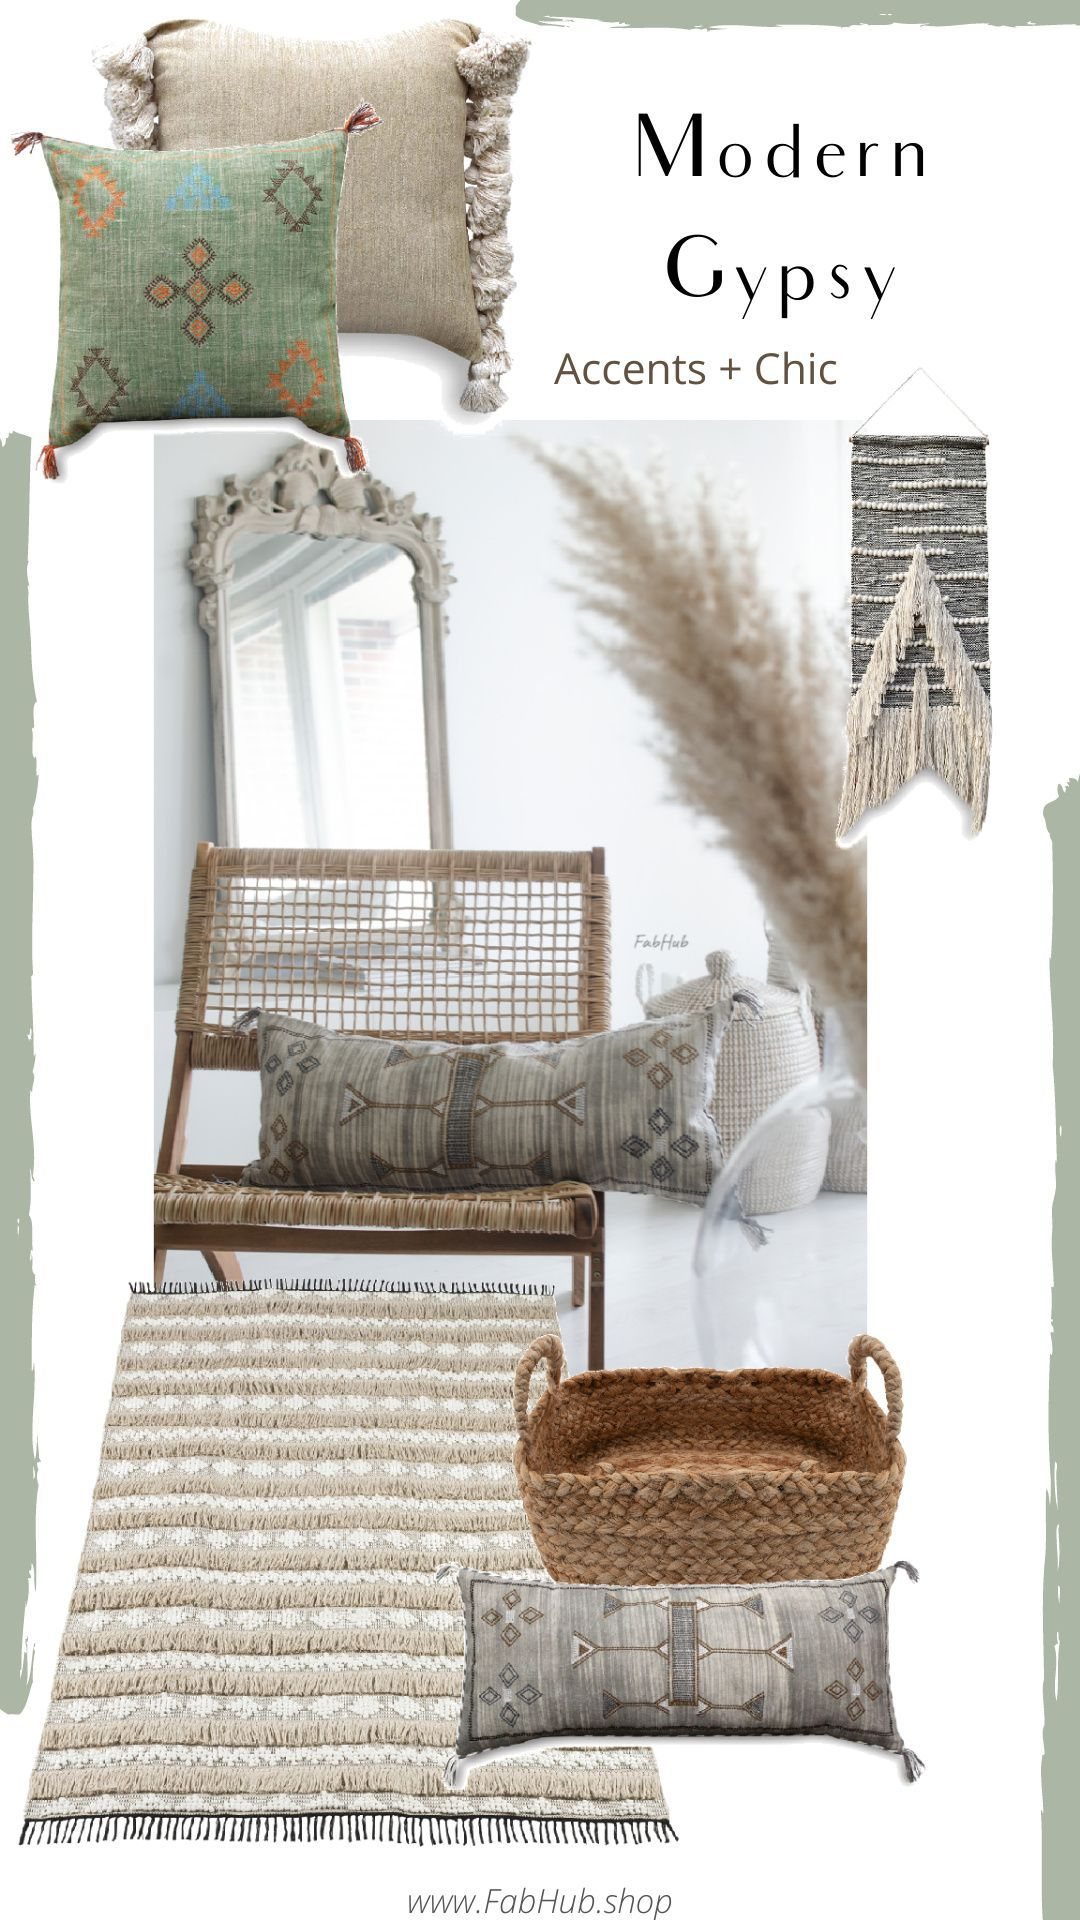 Achieve slow living and chic styles from these uniquely inspired Scandinavian moodboards. Each collection created and inspired by ethically, handcrafted pieces. #slowliving #roomdecor #homeaccents #bohoinspo #scandinavianinterior #interiordesigntips   Scandinavian Boho   Boho Inspiration   room decor   decor ideas   home accessories   room accents   home accessories   Bohemian inspiration  